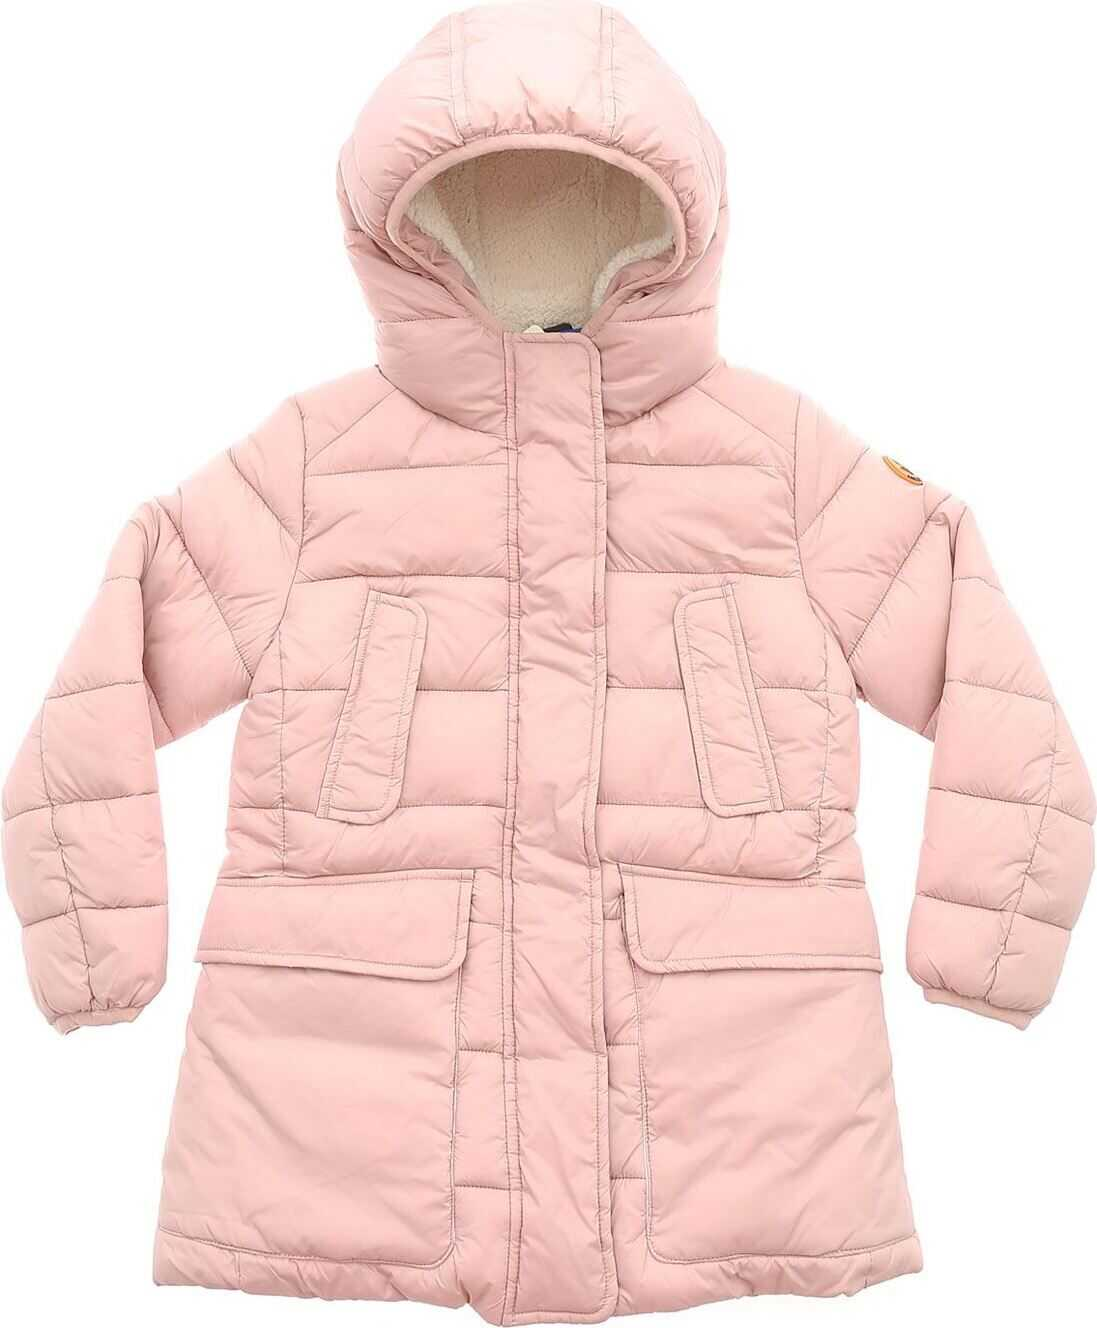 Hooded Long Down Jacket In Pink thumbnail